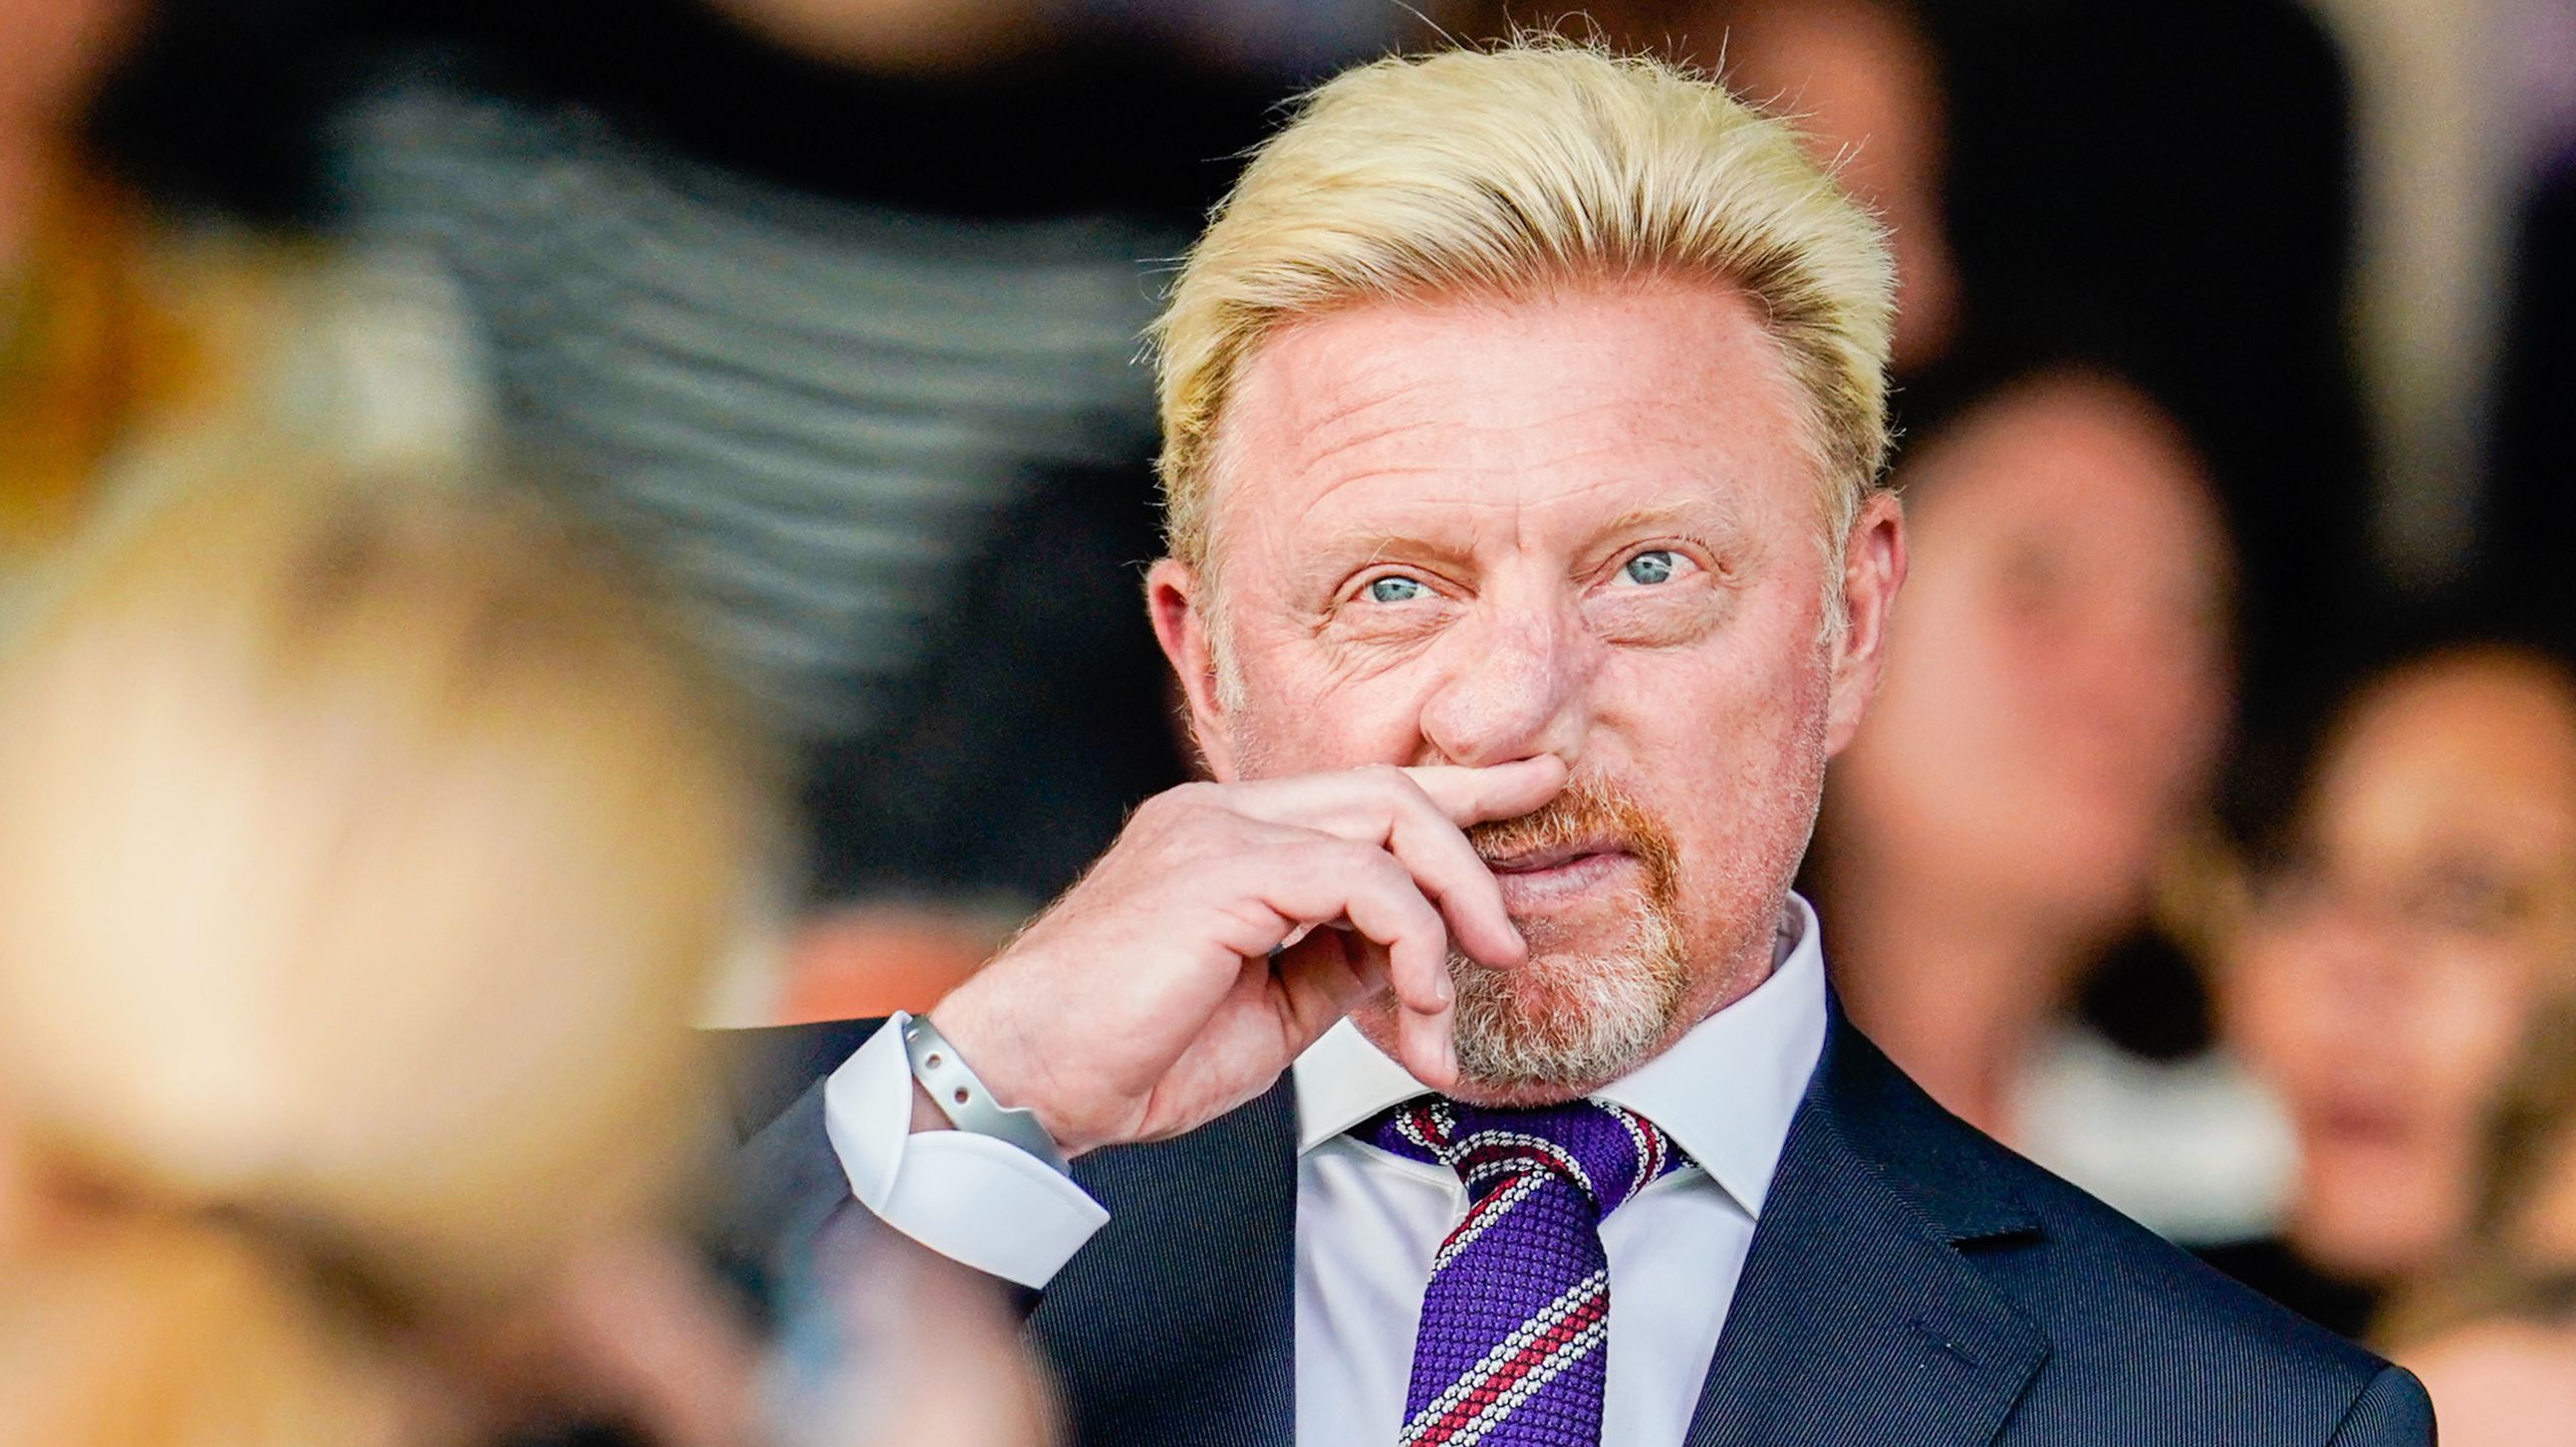 Tennisidol Boris Becker